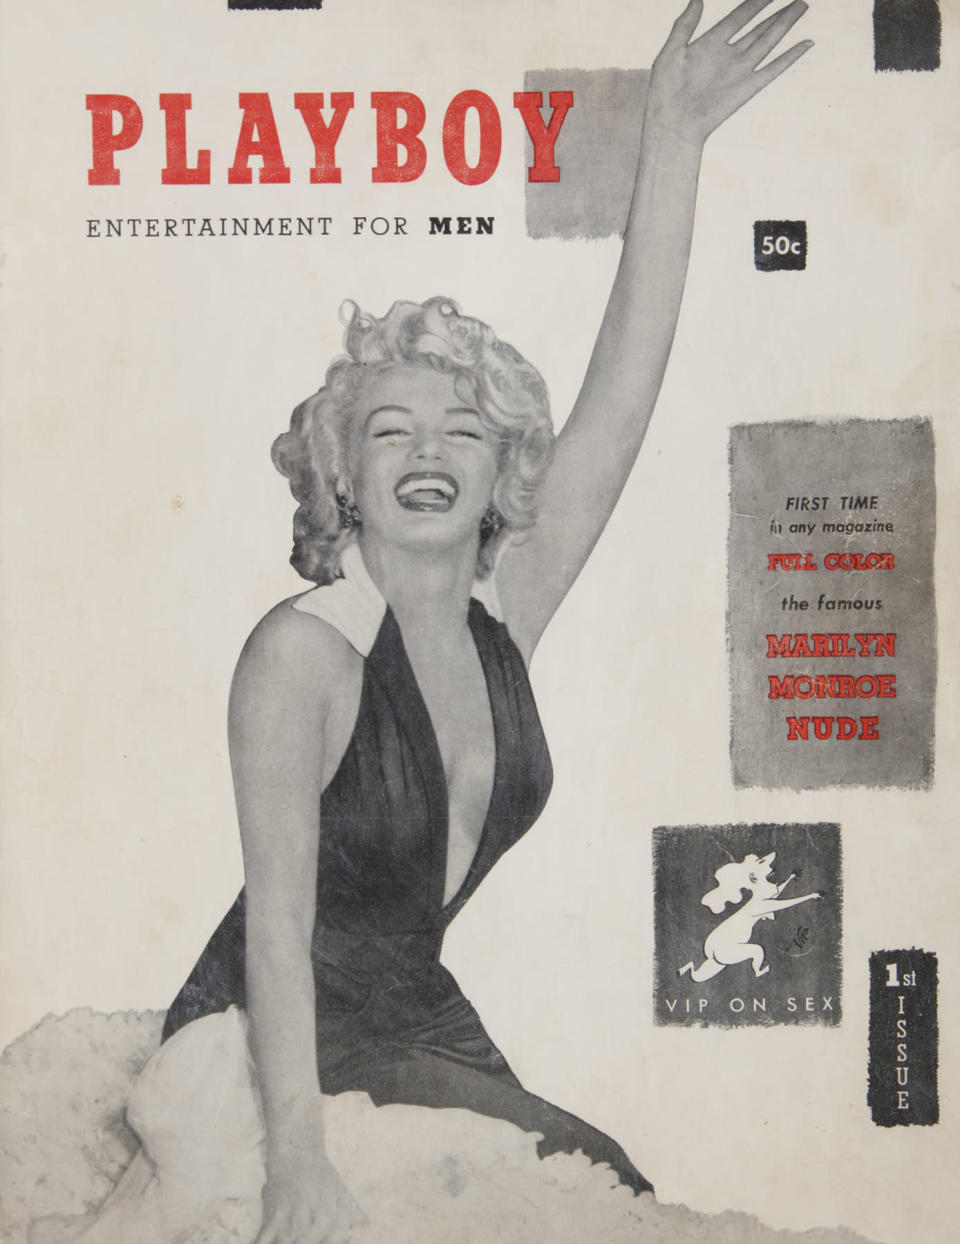 Marilyn Monroe stars in the first issue of <em>Playboy</em> magazine. (Photo: Julien's Auctions)